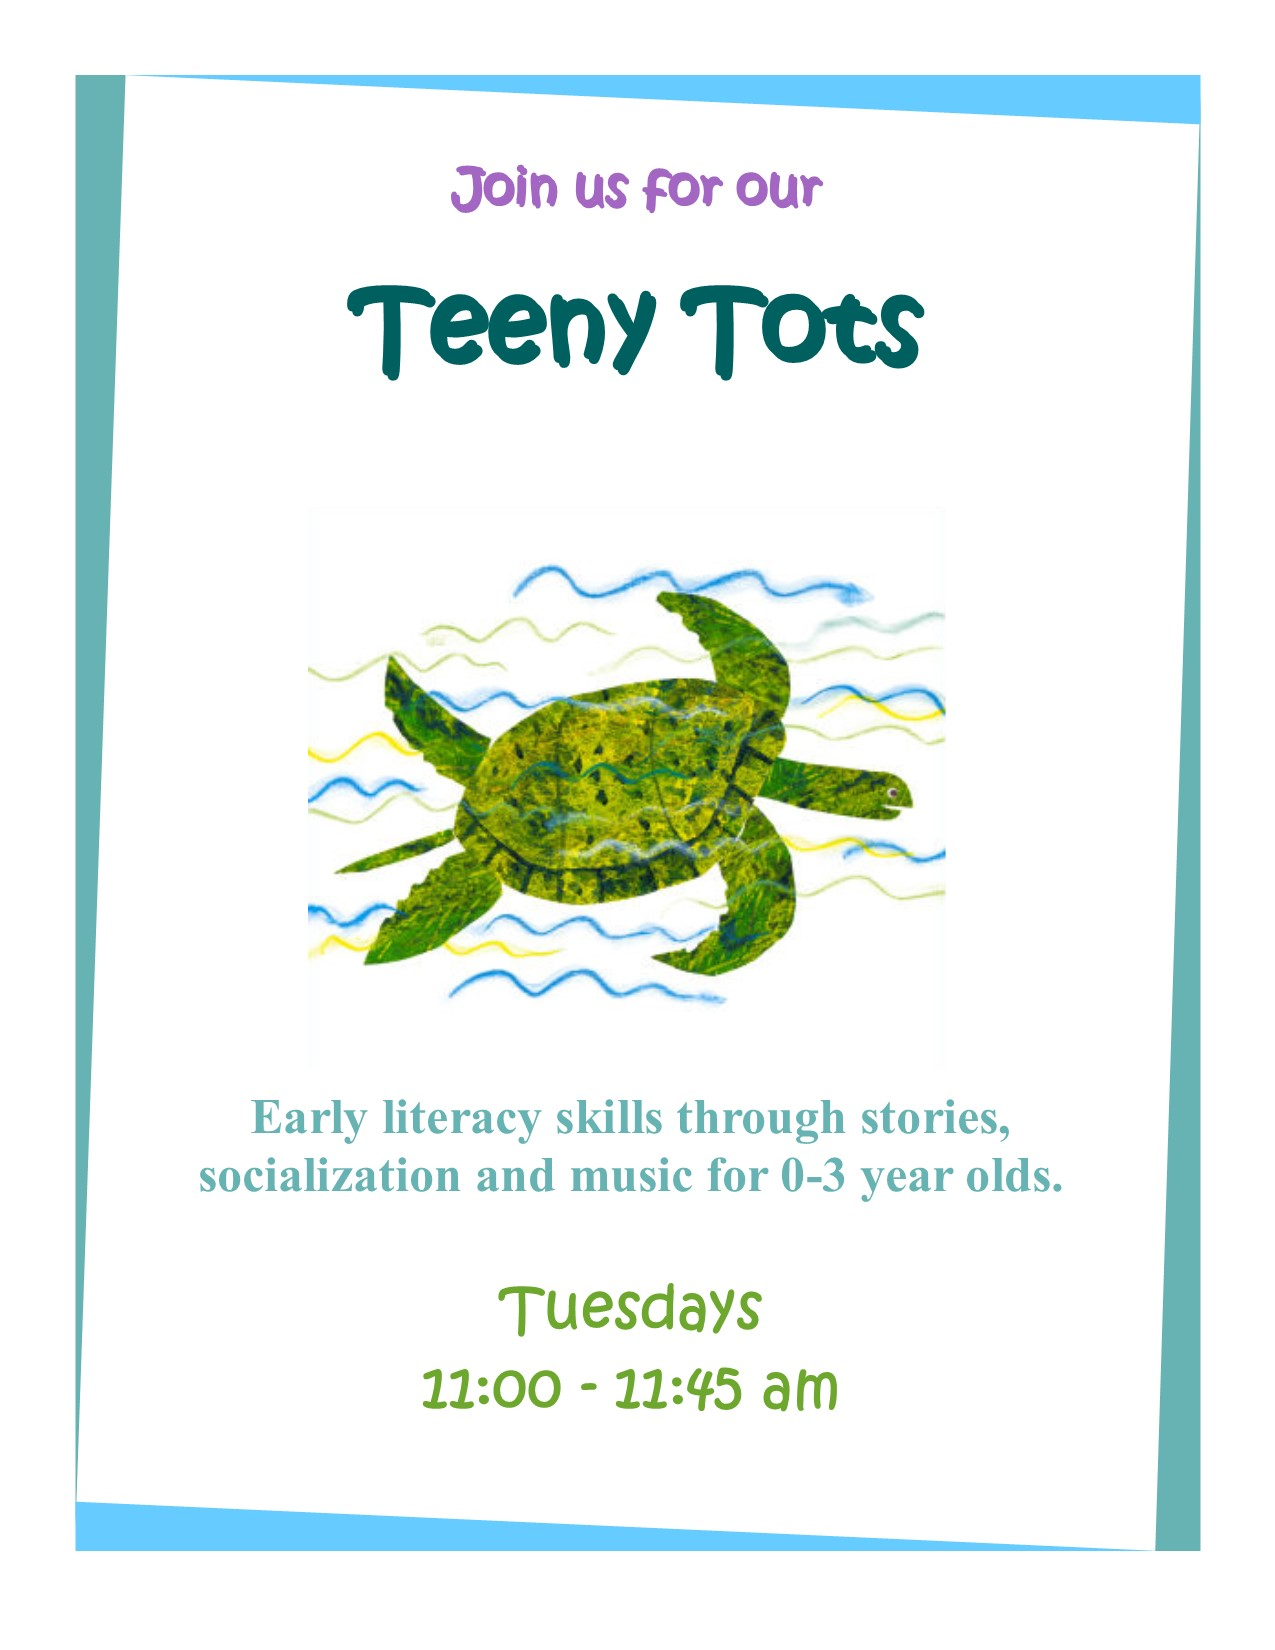 Teeny tots flyer (sea turtle)